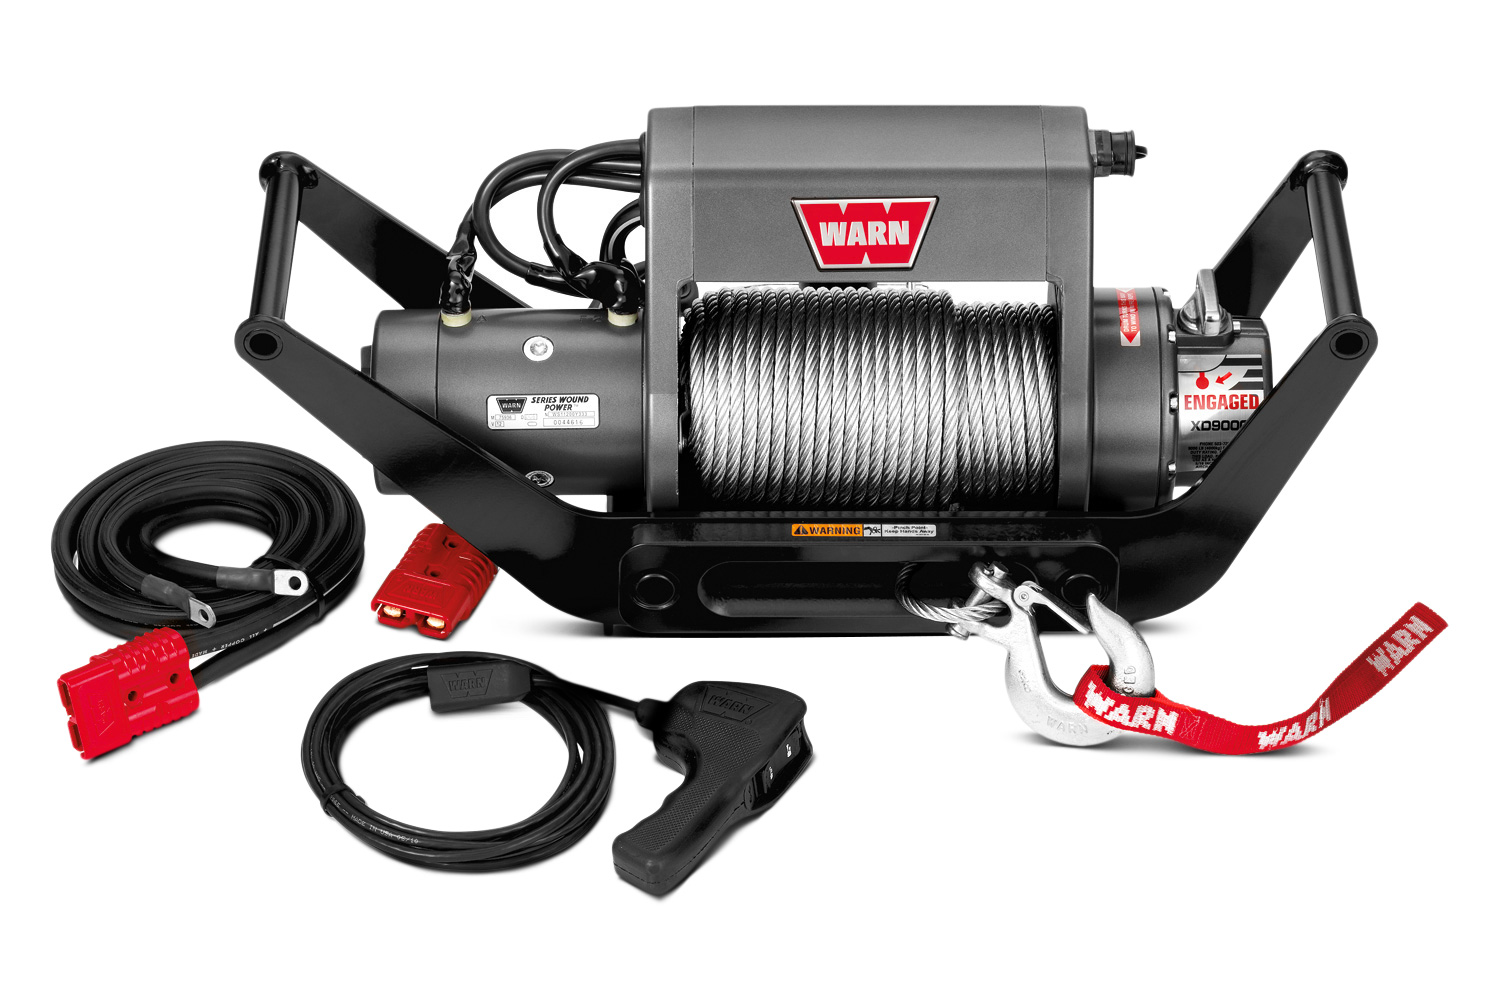 warn winch wiring diagram xd9000i stereo jack 9000 lbs 12v dc multi mount self recovery